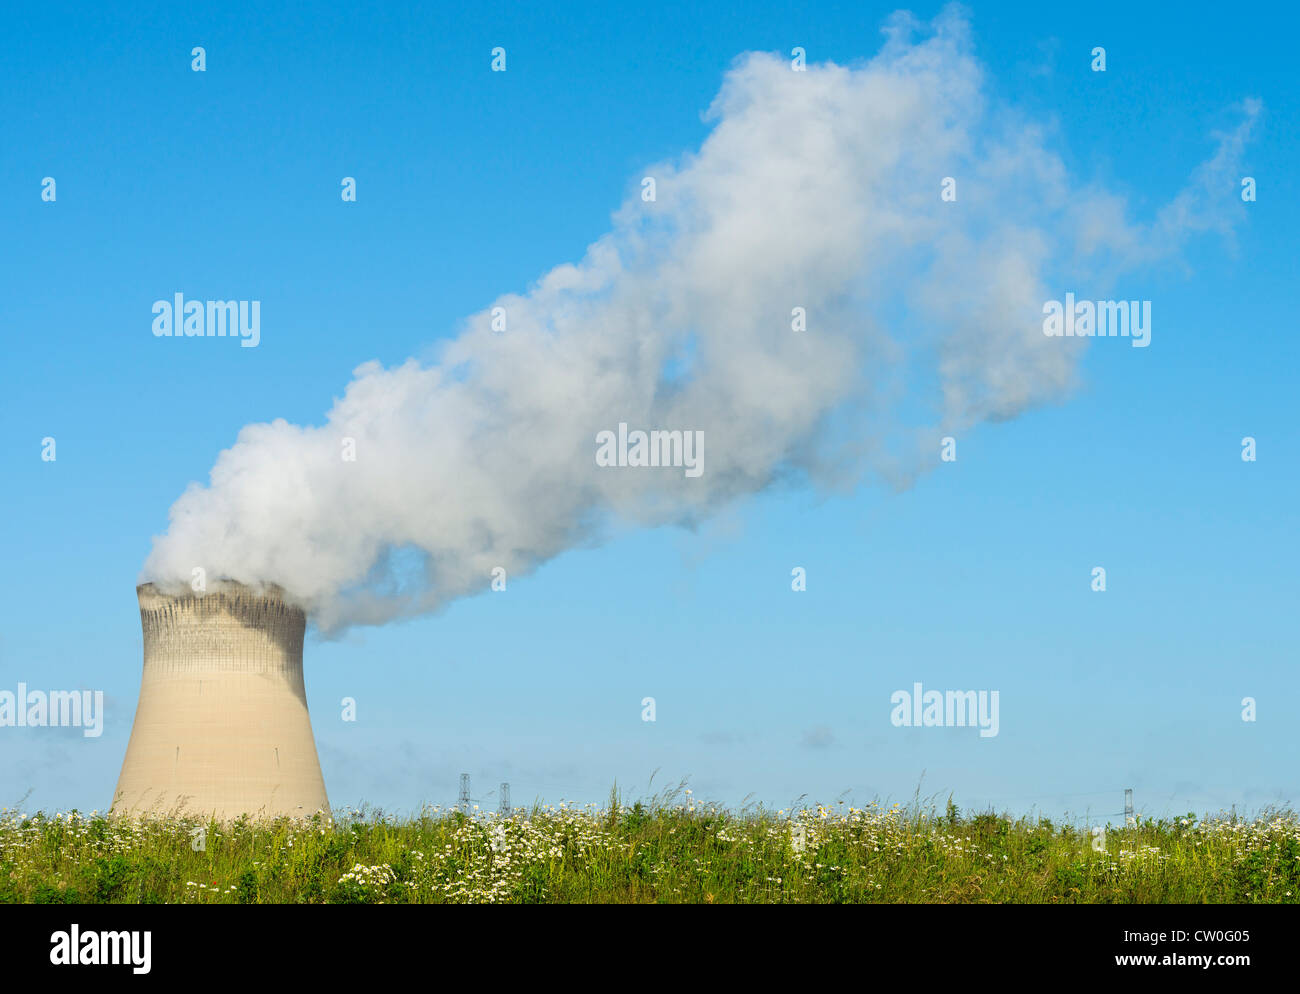 Smokestack of nuclear power plant - Stock Image